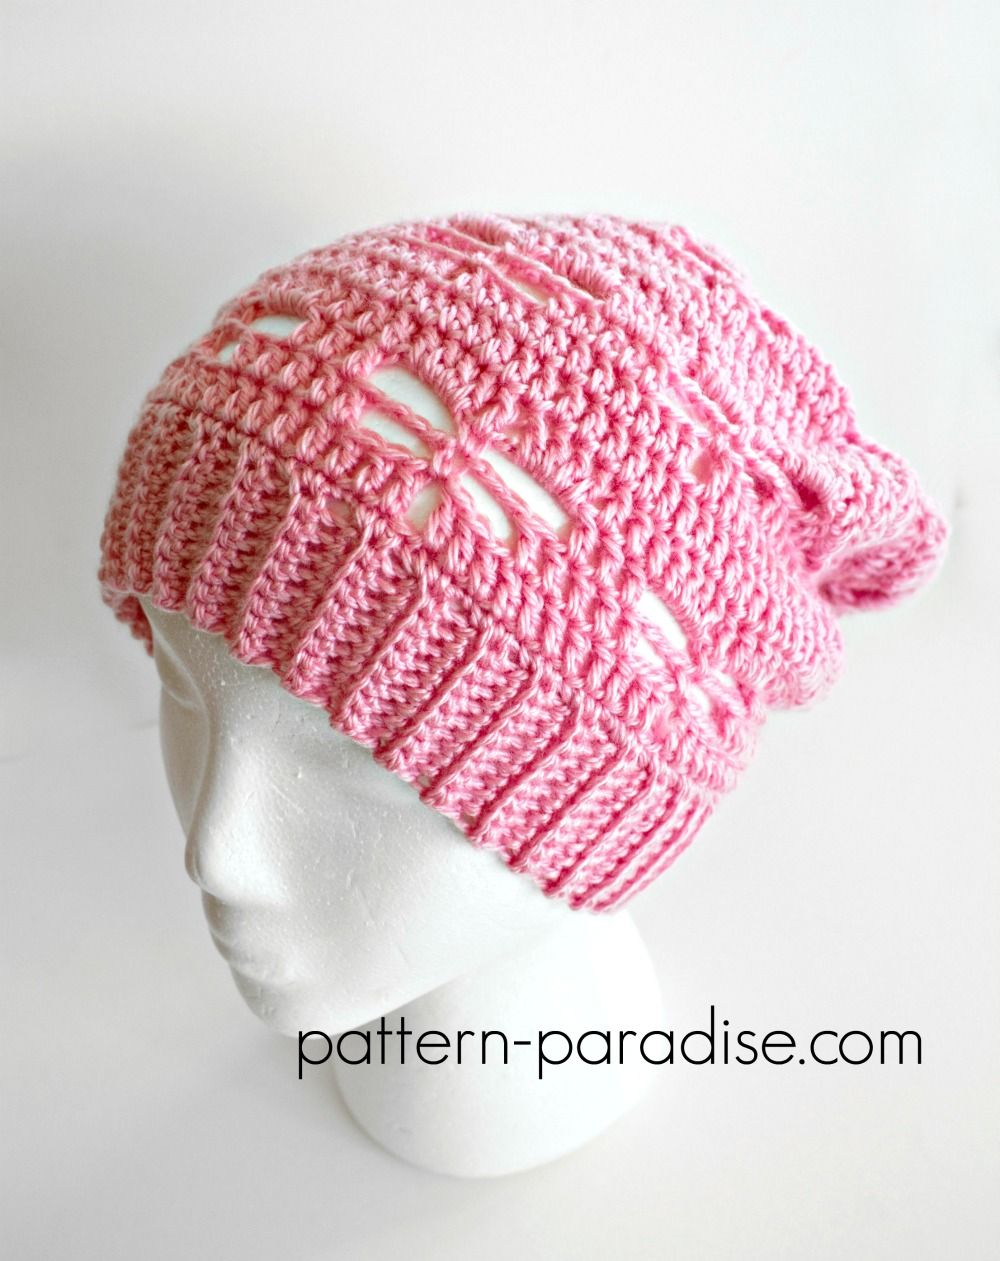 Free Crochet Pattern: Dragonfly Slouchy Hat | Accesorios